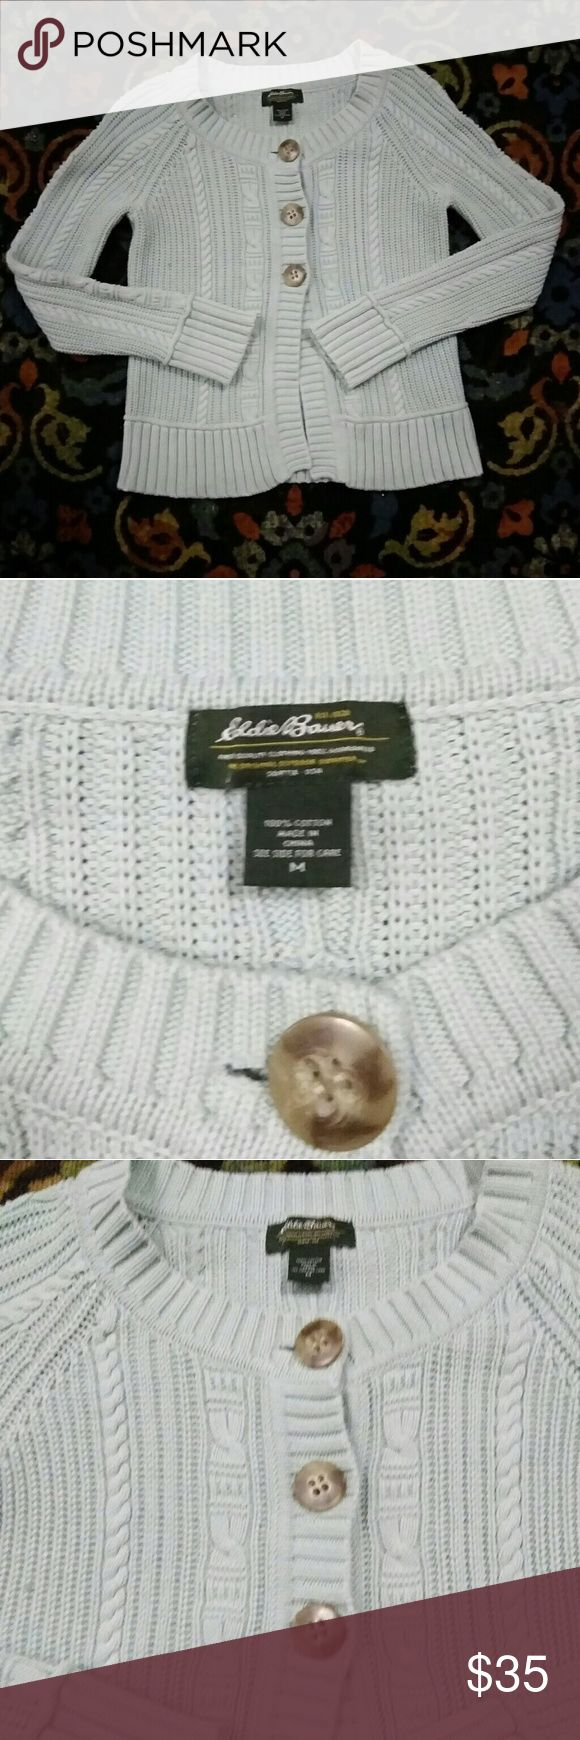 Eddie Bauer Cardigan- M- Perfect condition Pretty cardigan,  is very light color,  maybe a very light blue/green. Perfect for pastel color lovers. Perfect condition,  size Medium.  Three button design. Beautiful knit design. Eddie Bauer Sweaters Cardigans